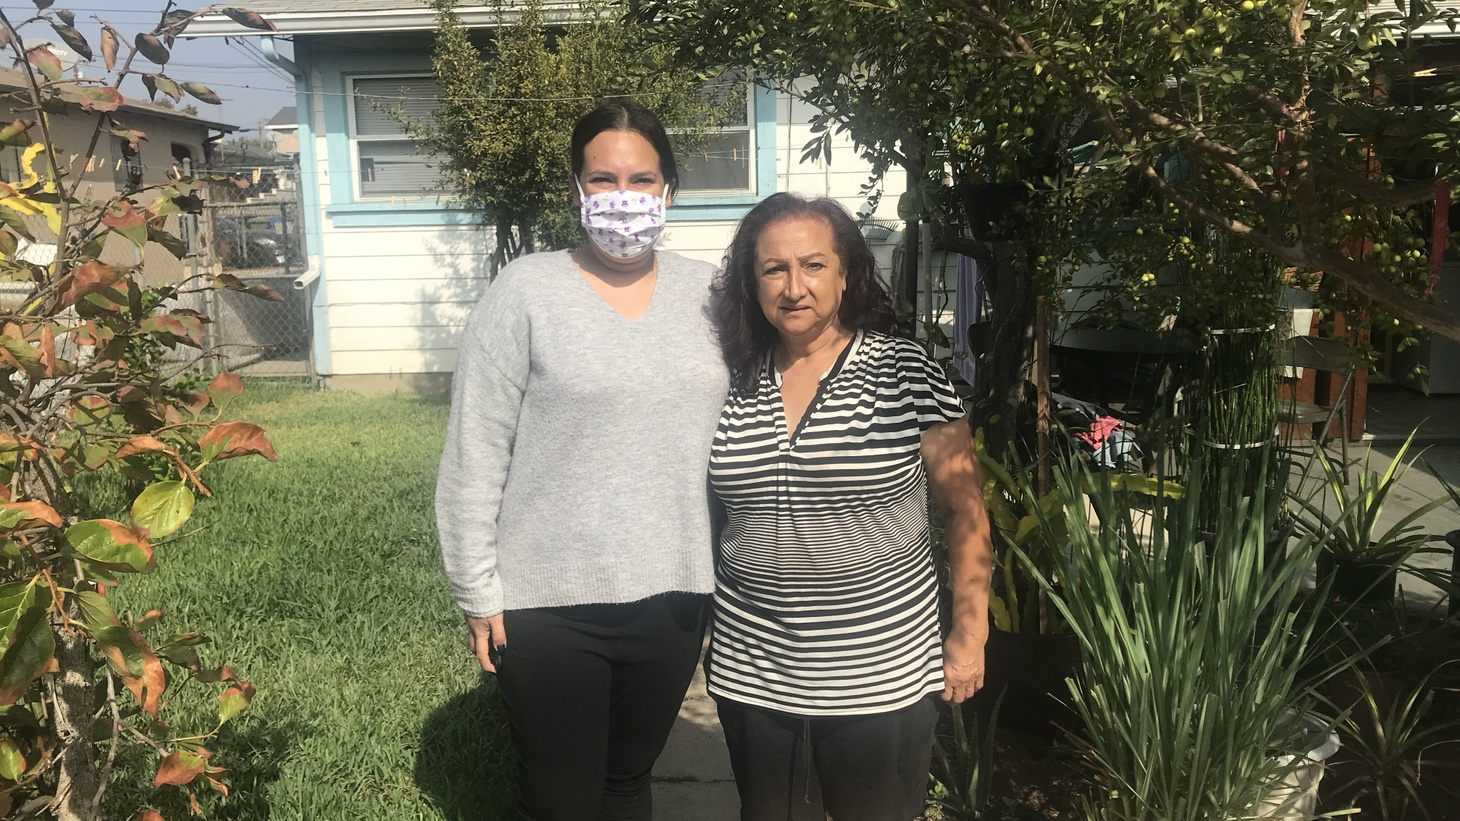 Guadalupe Valdovinos (left) and her mother Lourdes in their backyard in East Los Angeles. Their home is among hundreds that have been cleaned by the state due to elevated lead levels in the soil. However, Guadalupe Valdovinos still feels like she's in danger.